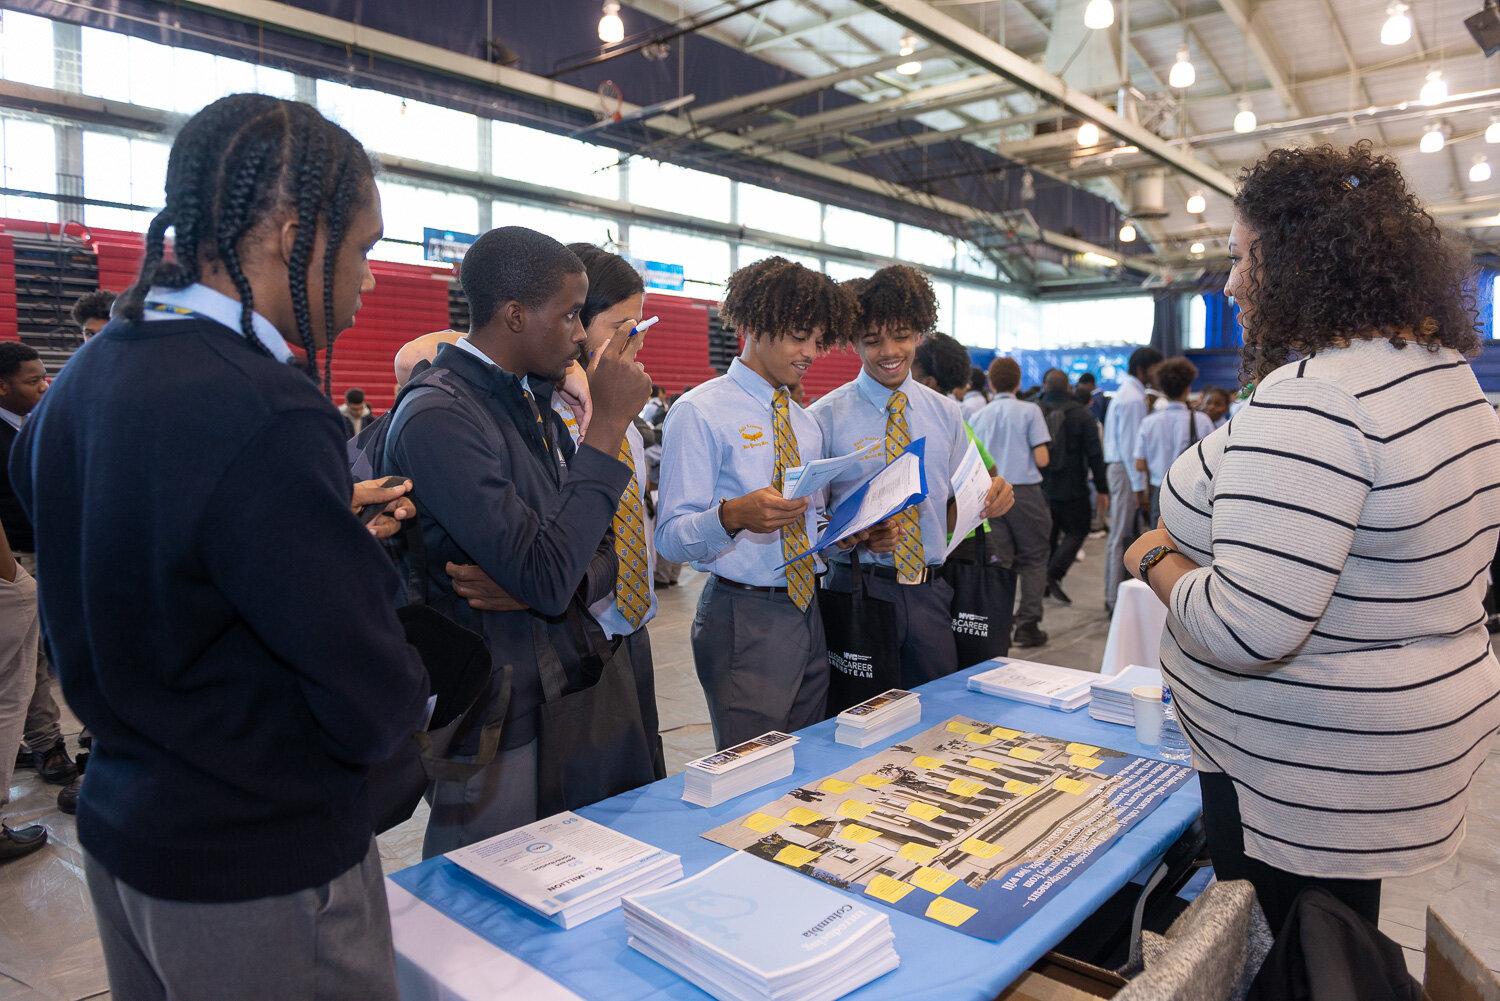 Hundreds of high school students attended a College and Career Fair at Queens College on Friday. Photos by Andy Poon/Queens College.